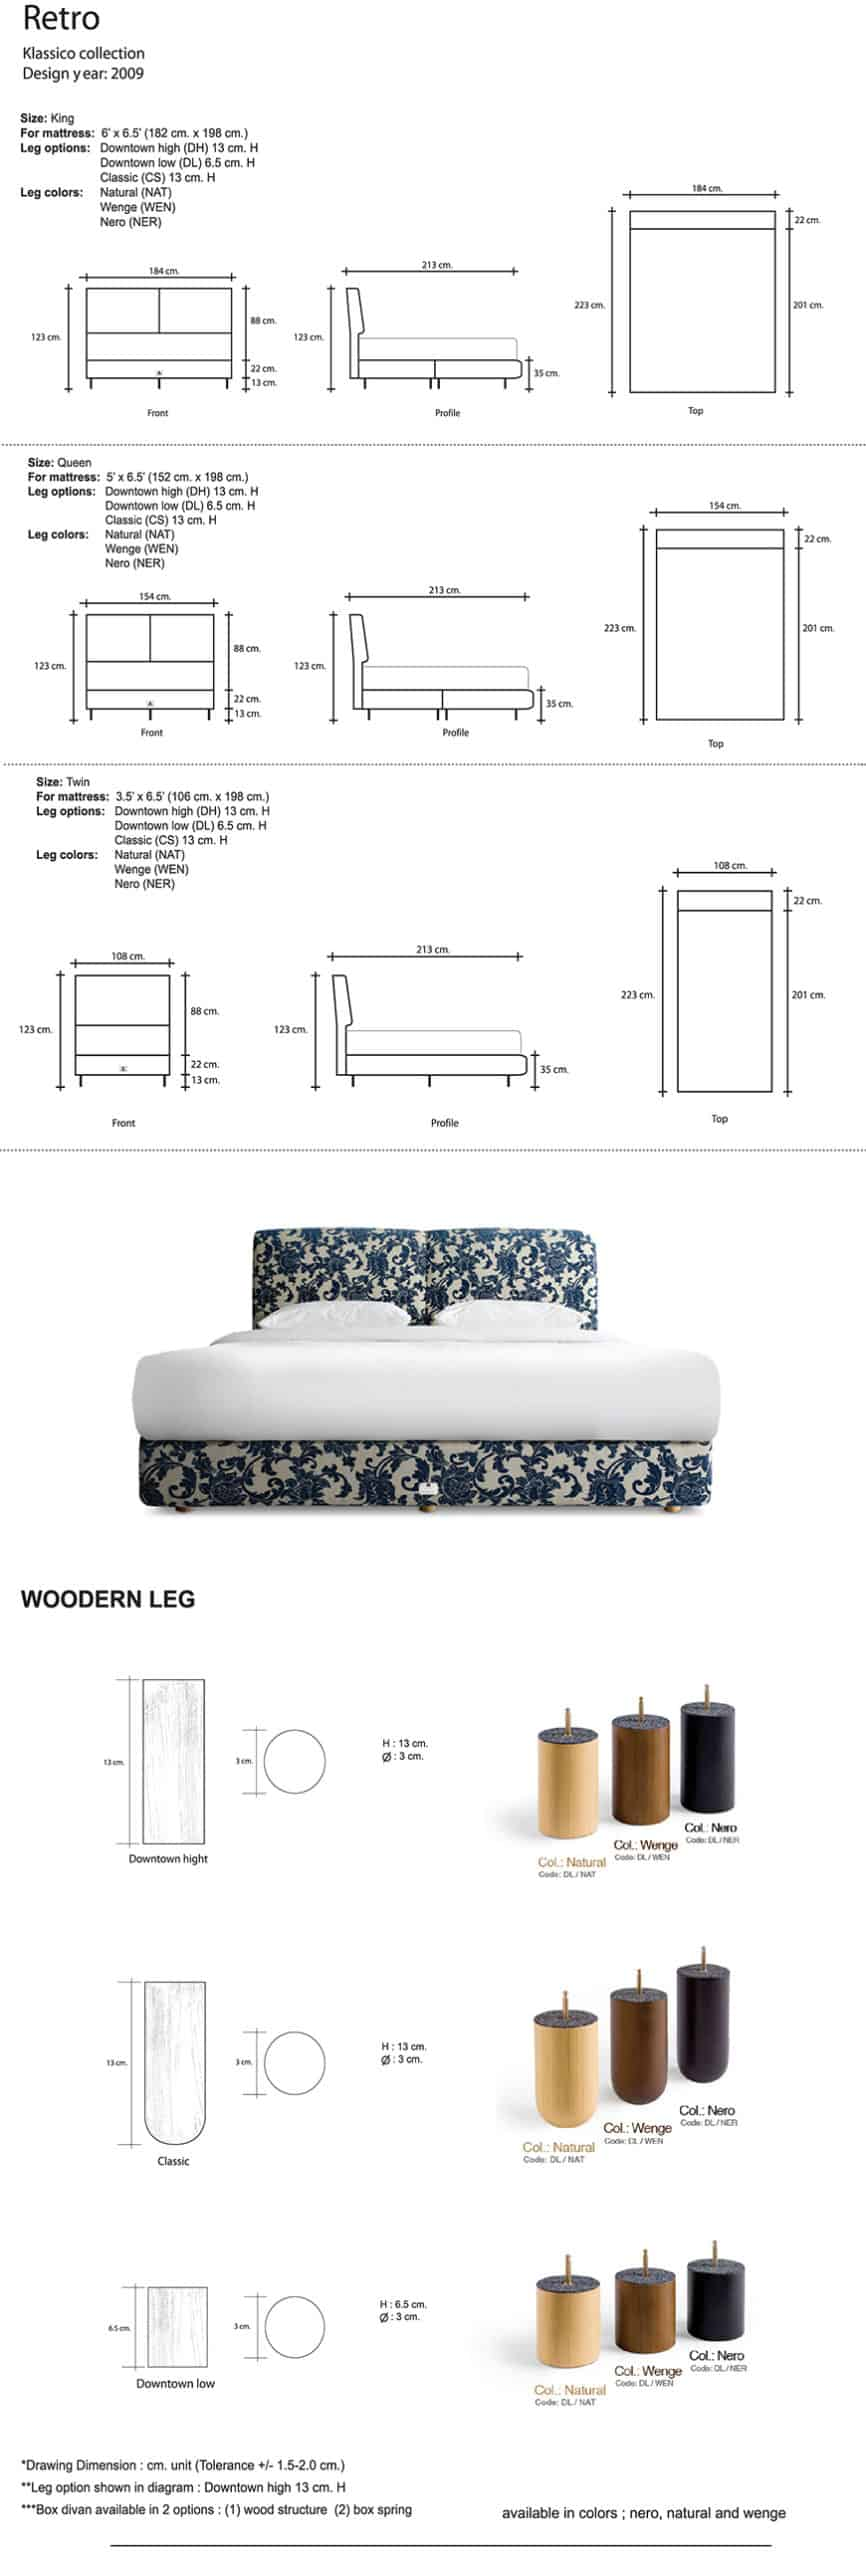 Lotus Bed frame : Retro – Bed Cover Microfibre Fabric and PU Leather - Wooden Legs 7